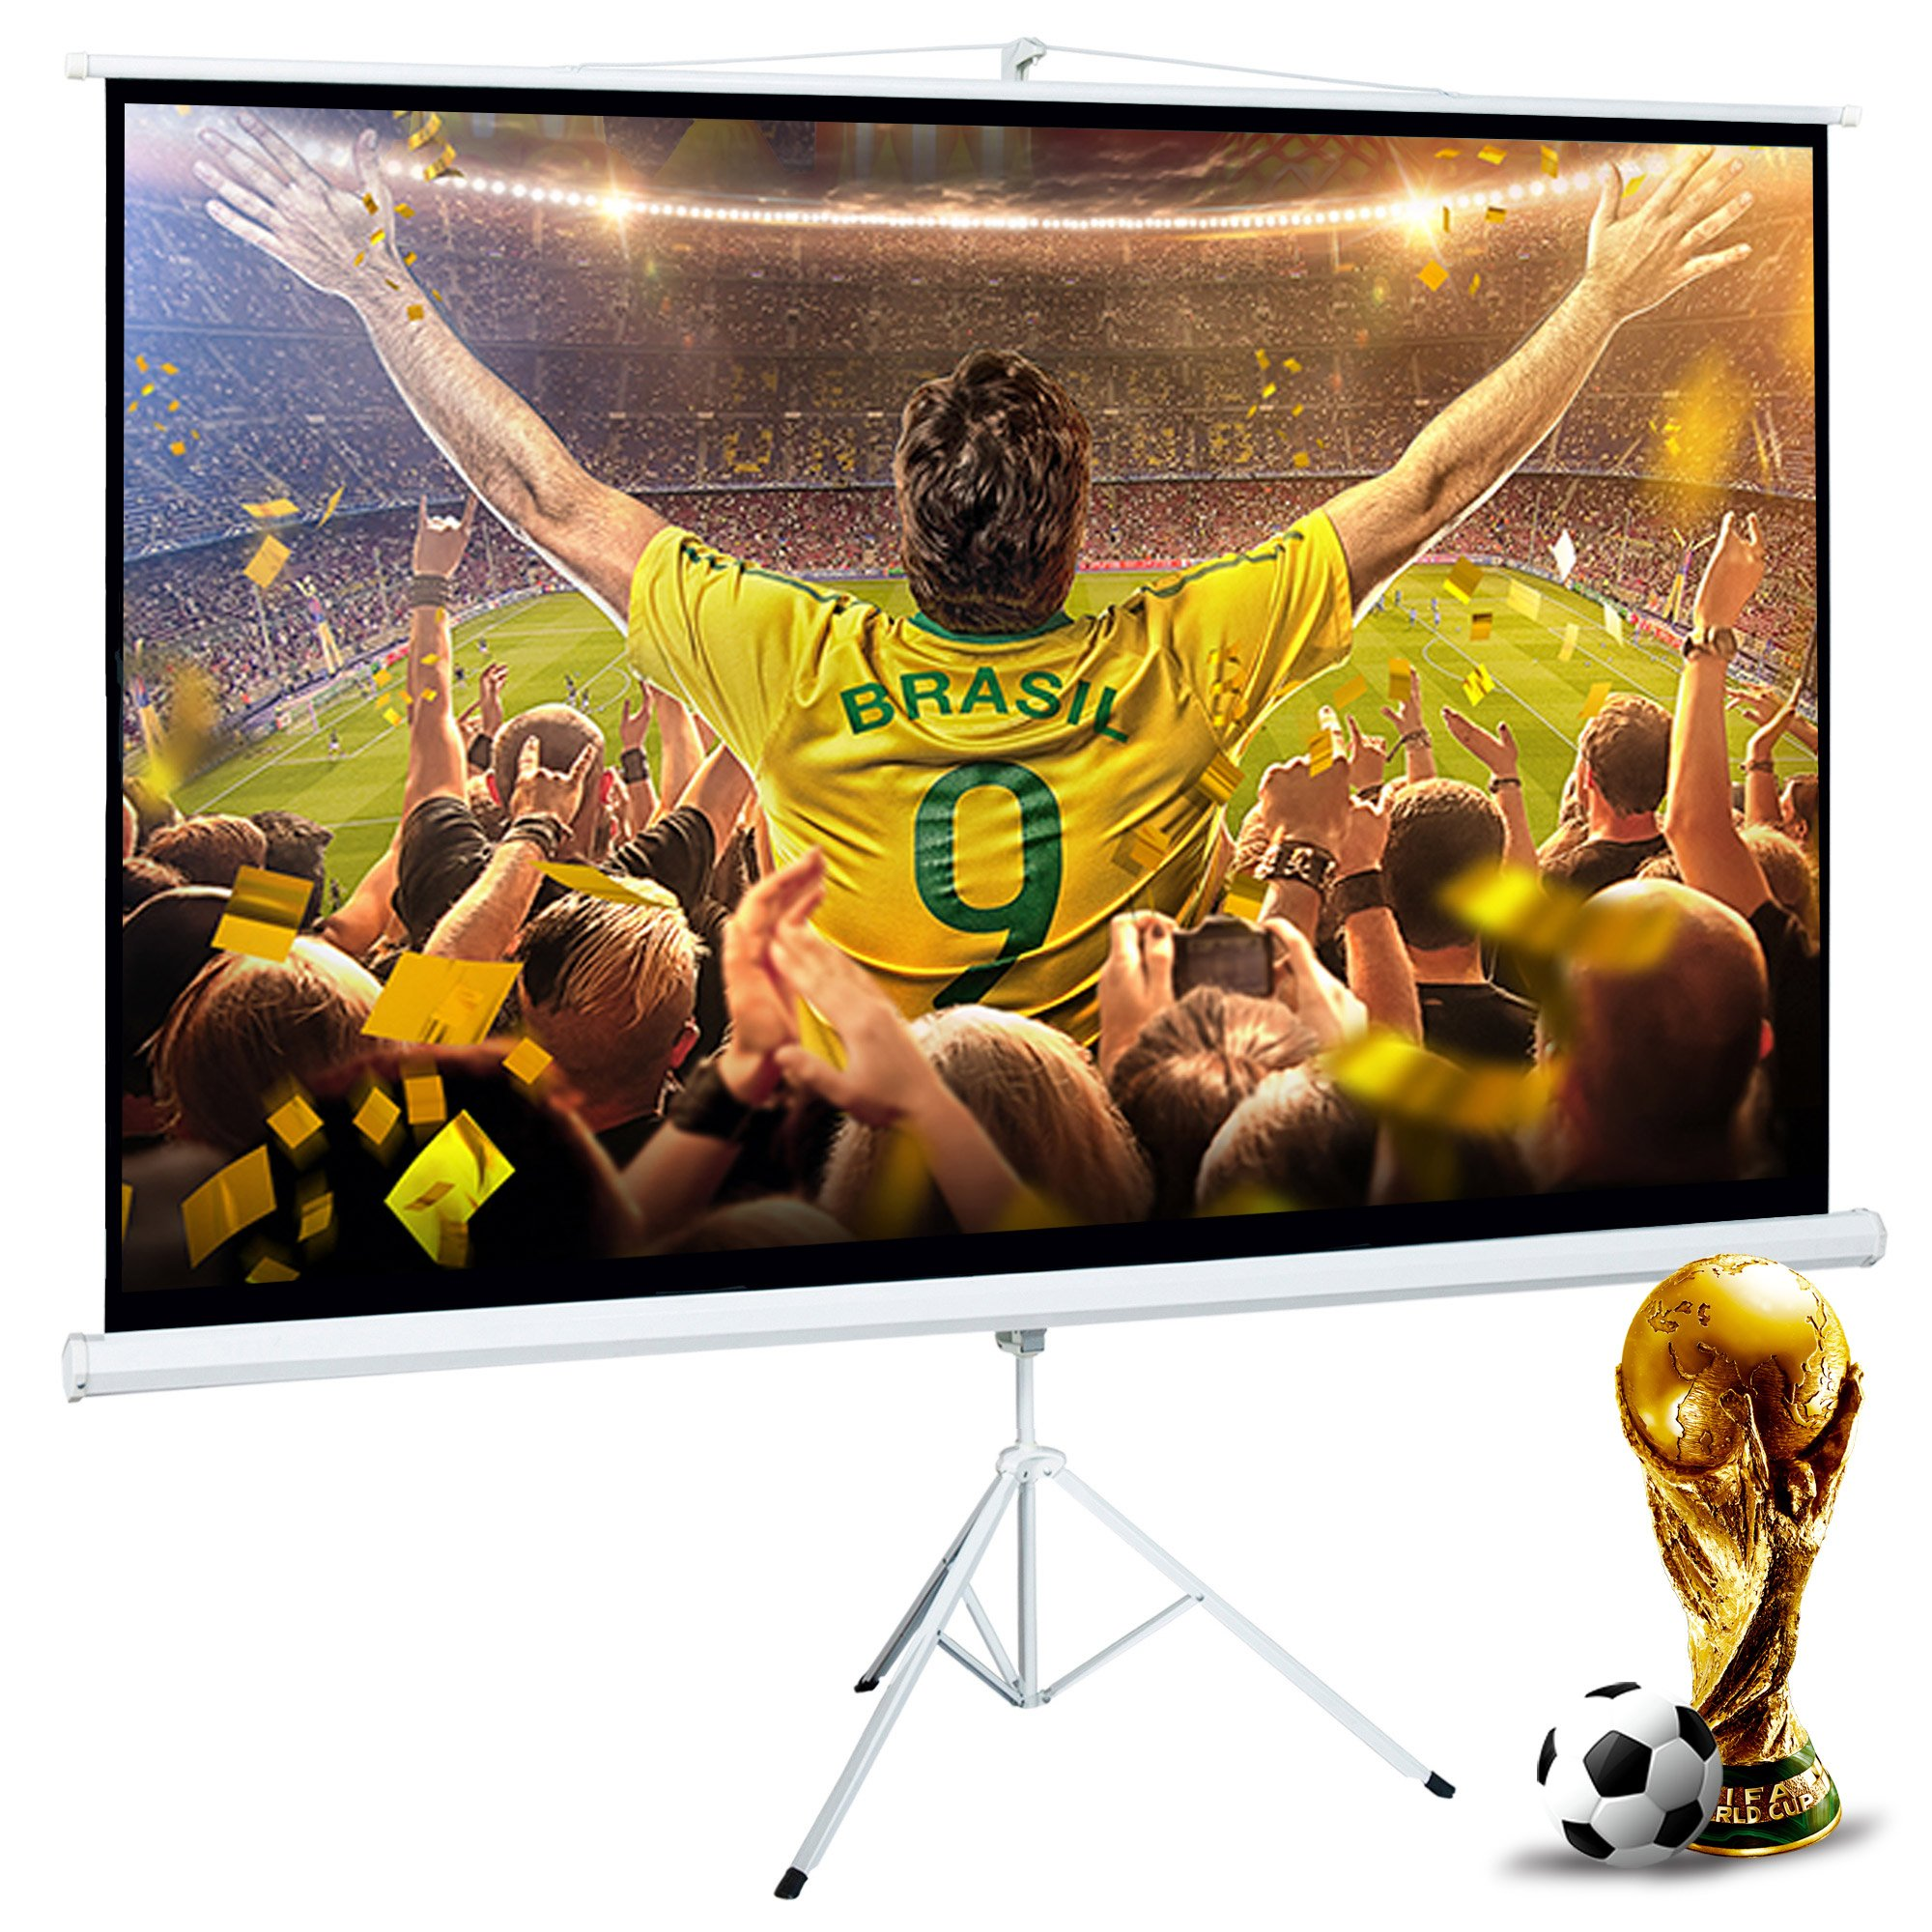 Cloud Mountain 100 Inch 16:9 Projector Screen with Stand Portable Indoor Outdoor Pull Up Tripod Stand Projection Screen for Home Theater Office School (Adjustable Aspect Ratio, 1.1 Gain, Matte White) by Cloud Mountain